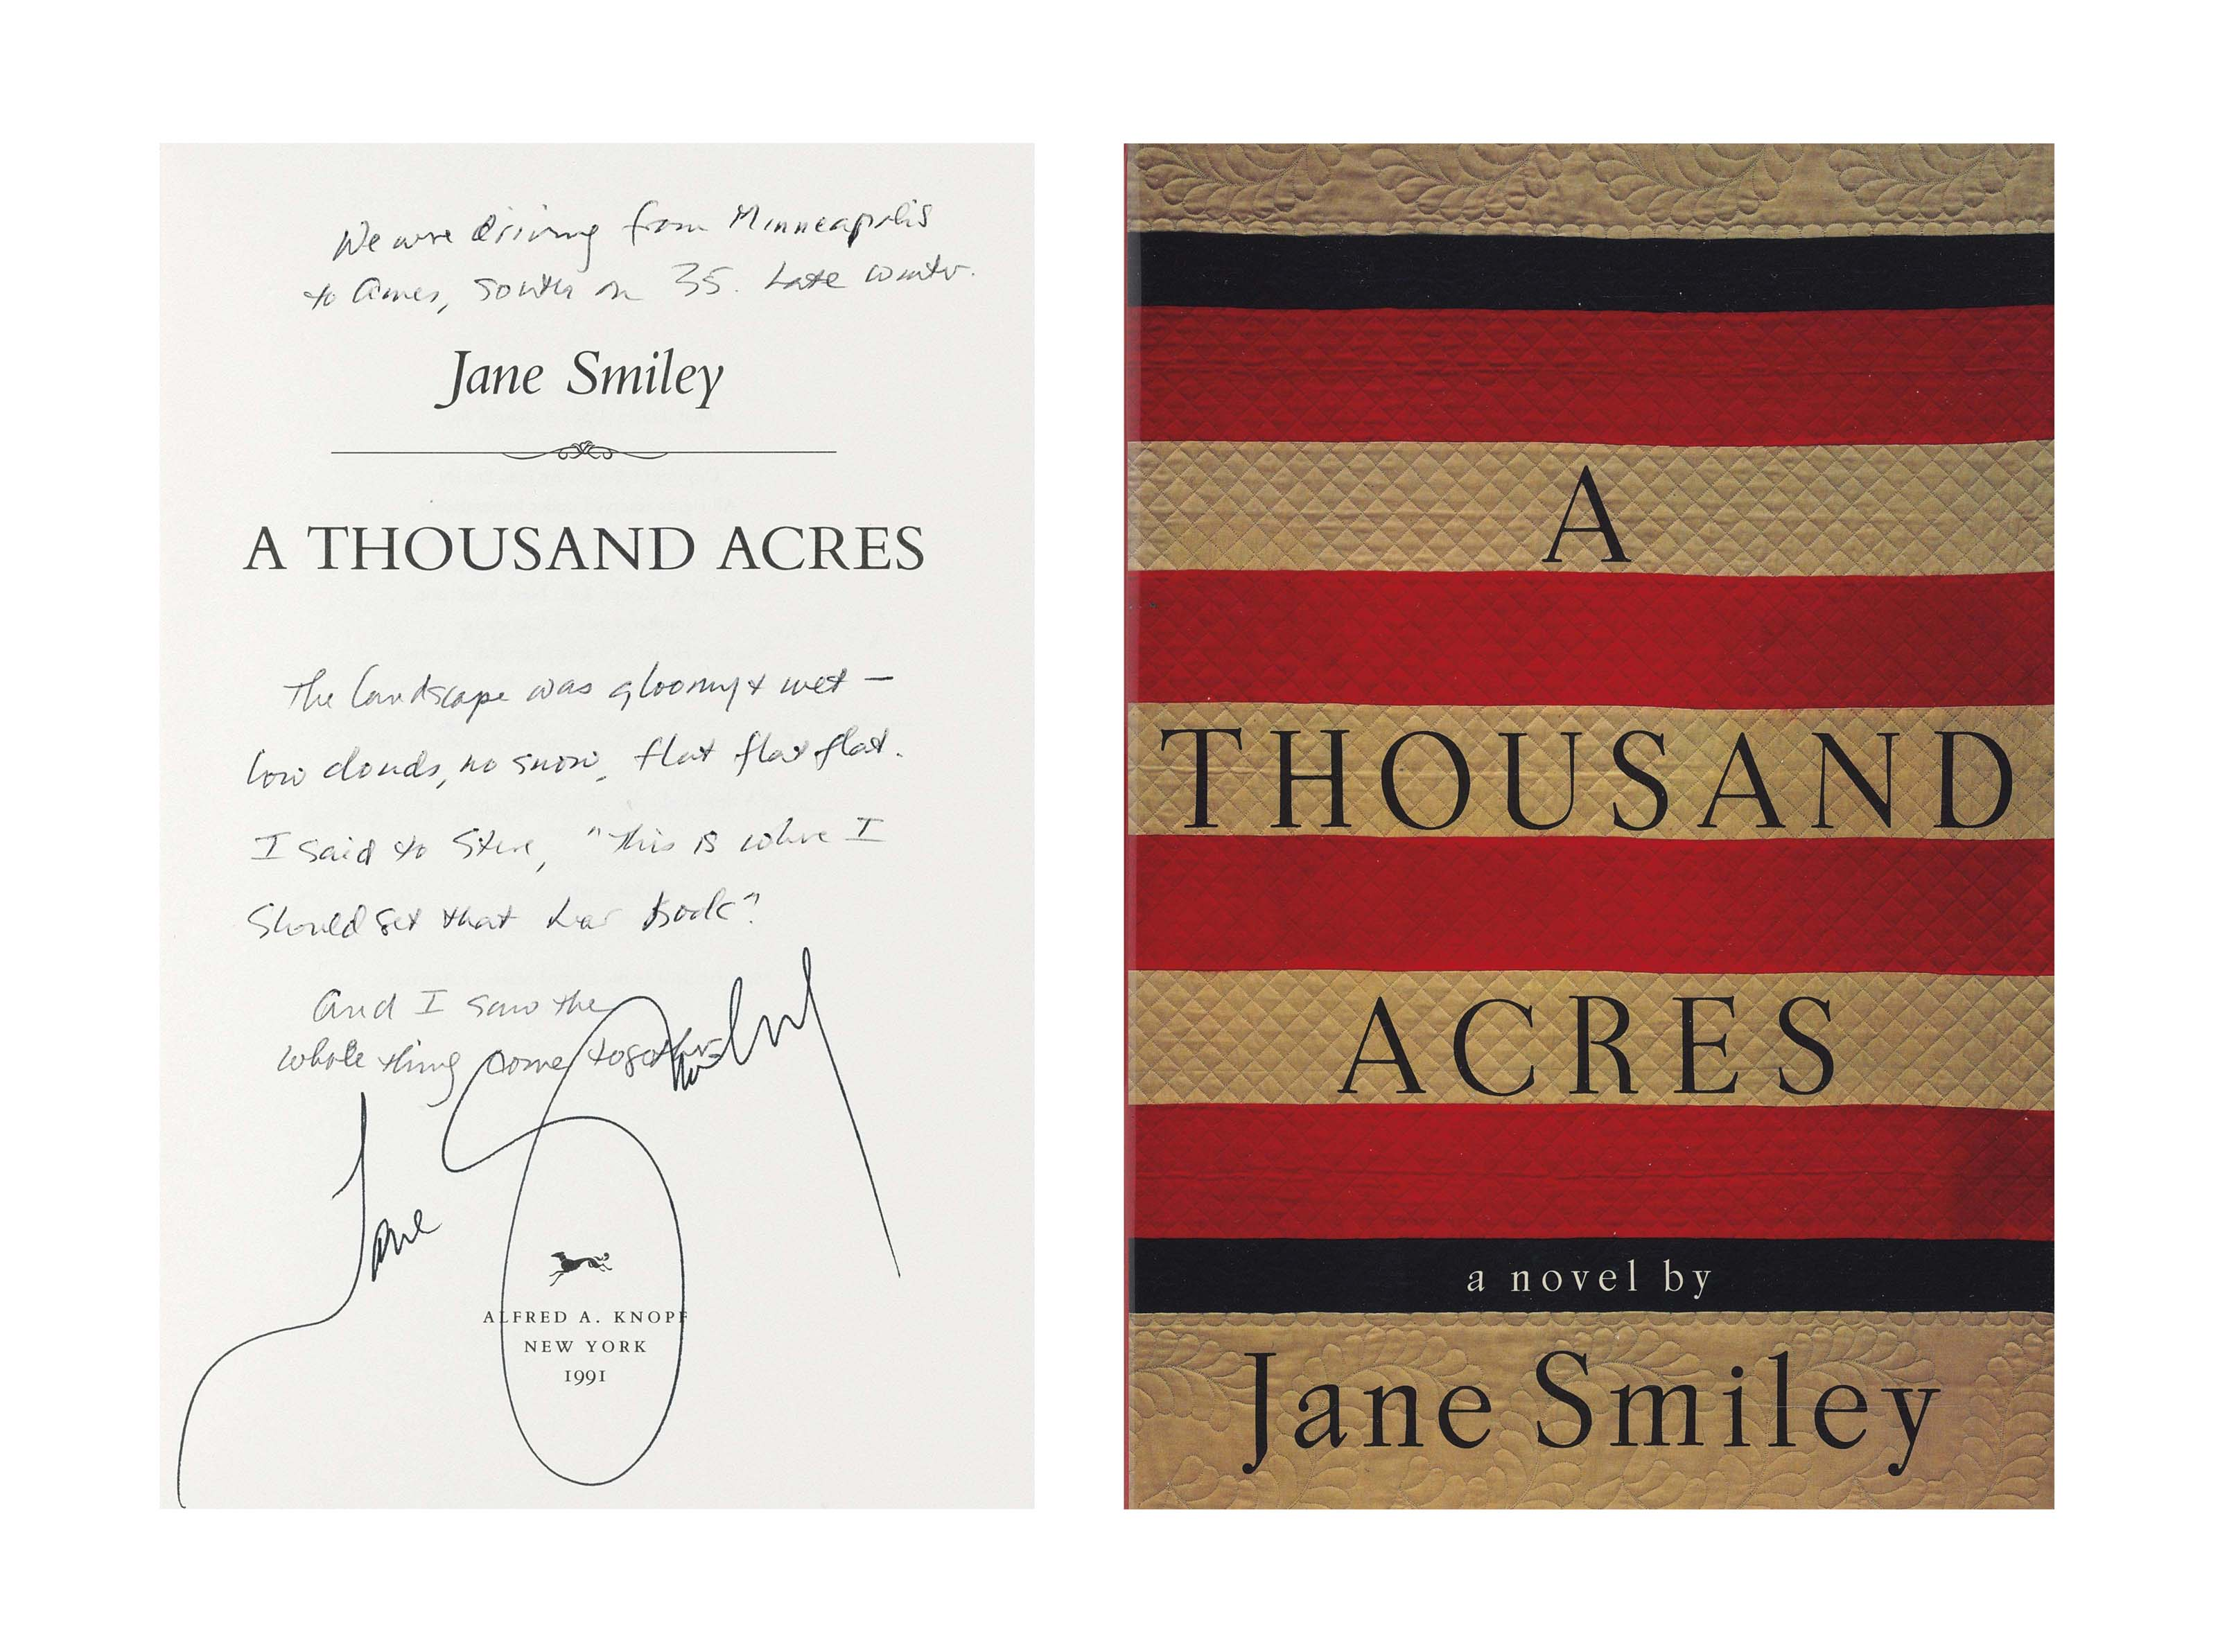 jane smiley essay Personal essay: brain child magazine  as well as new authors all of whom become part of brain child's literary community joining the ranks of novelists jane smiley.